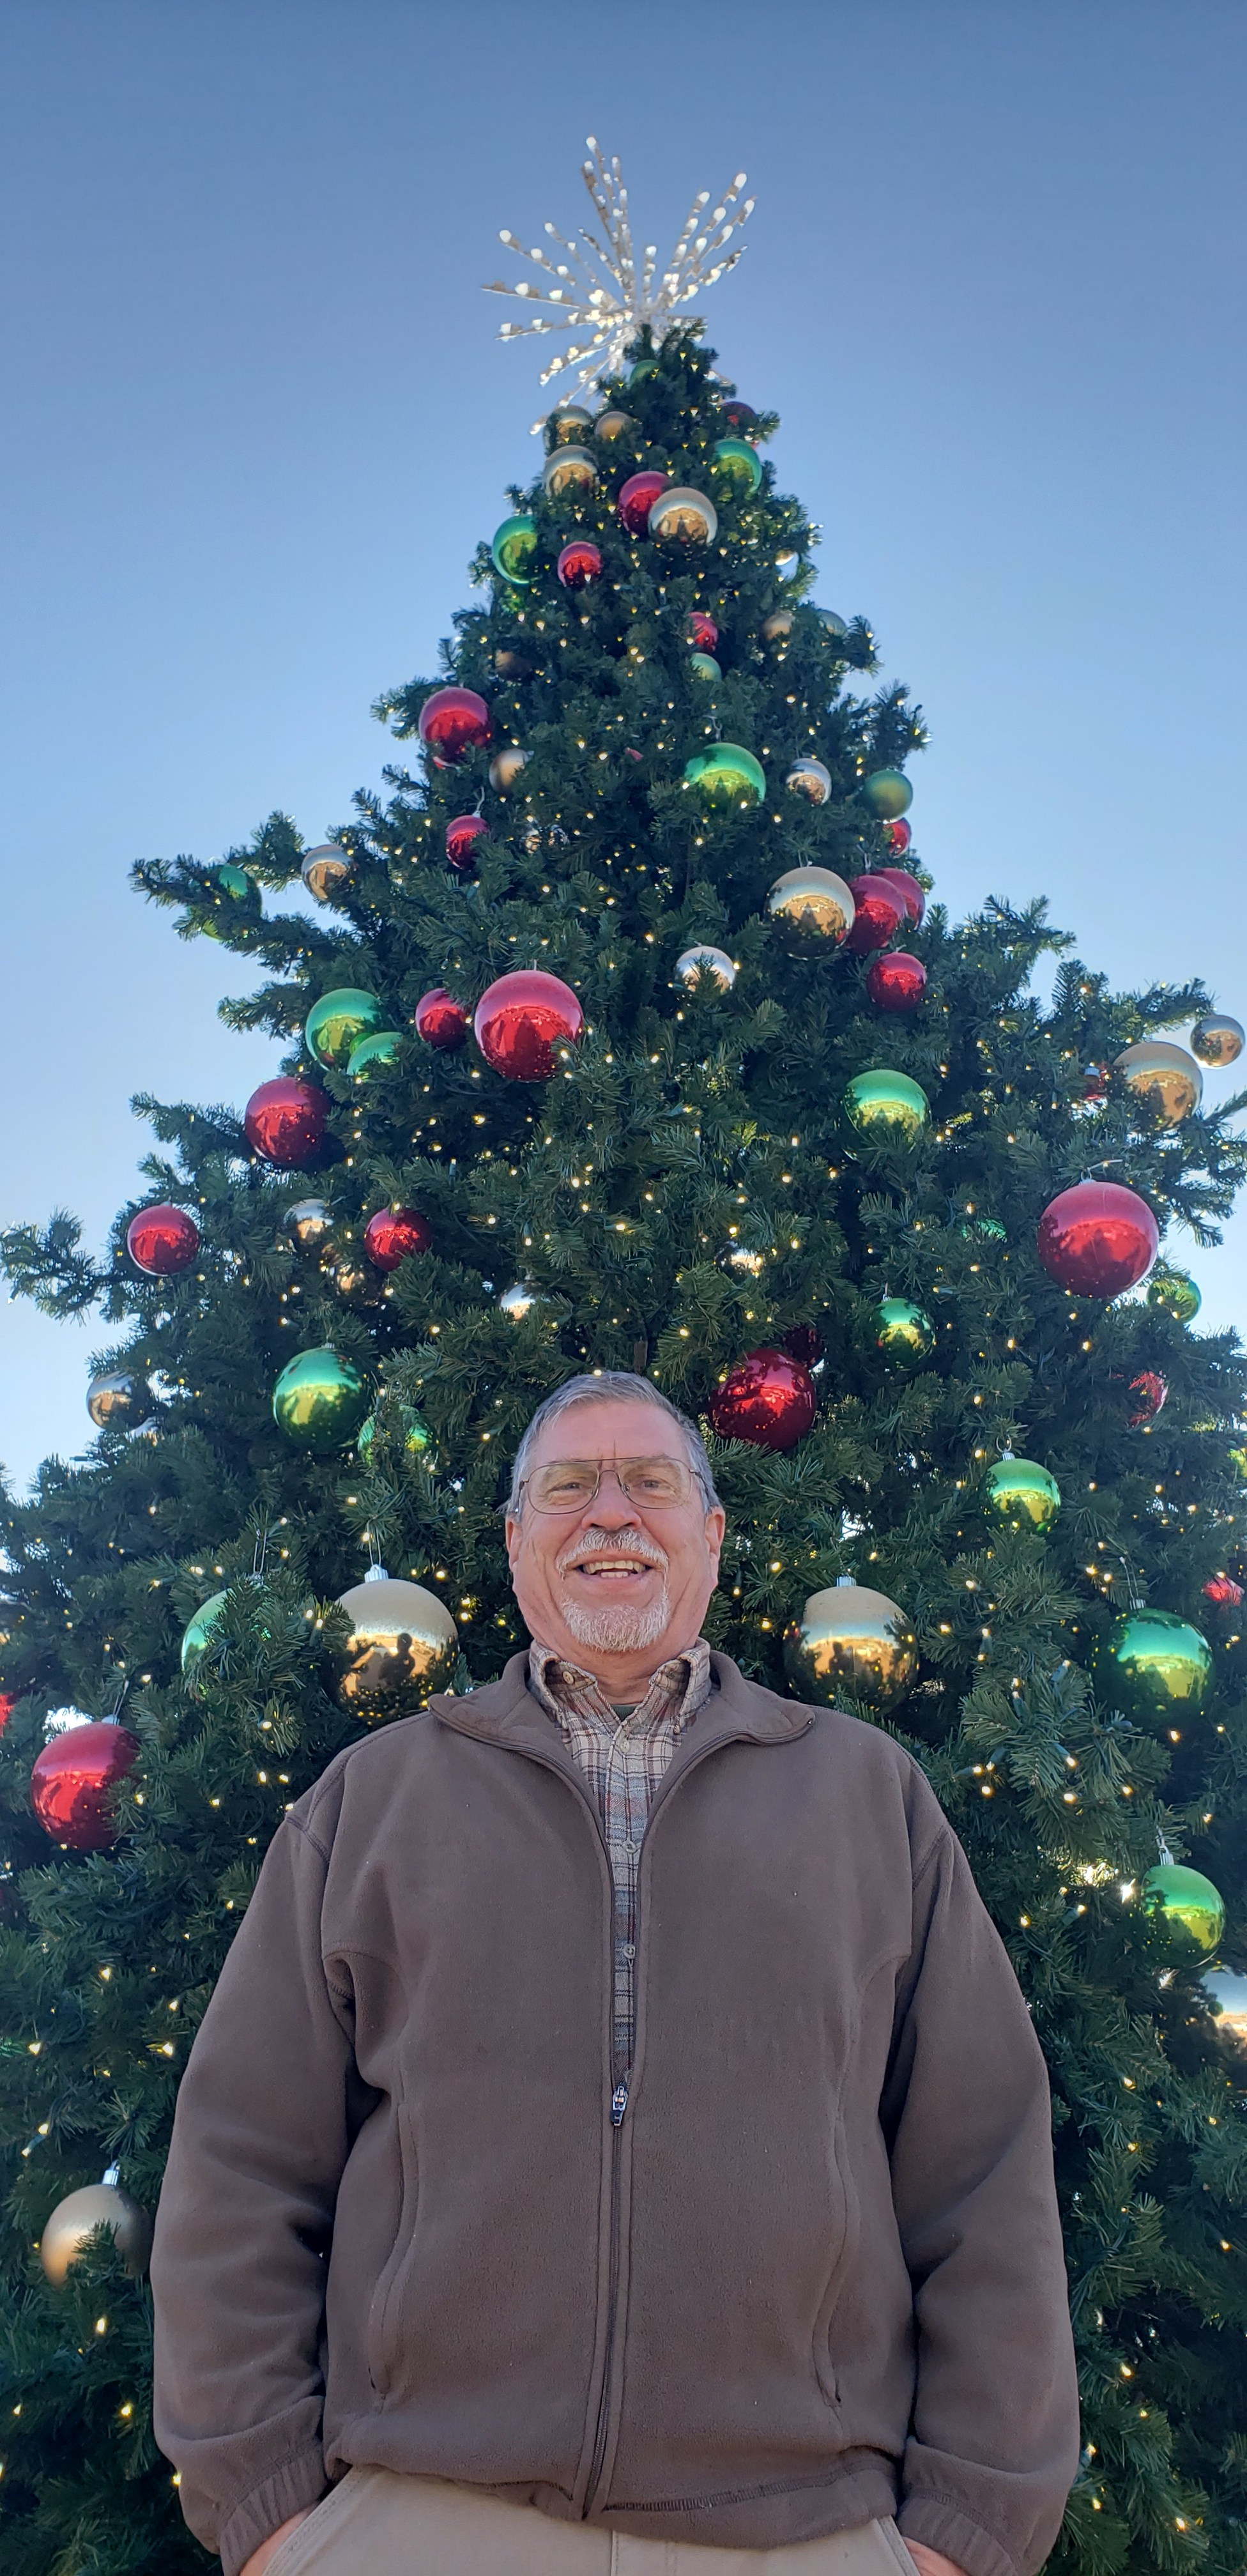 Christmas Tree Lights: James Newburn, the great-great grandson of Edward Hibberd Johnson, the inventor of the Christmas tree lights